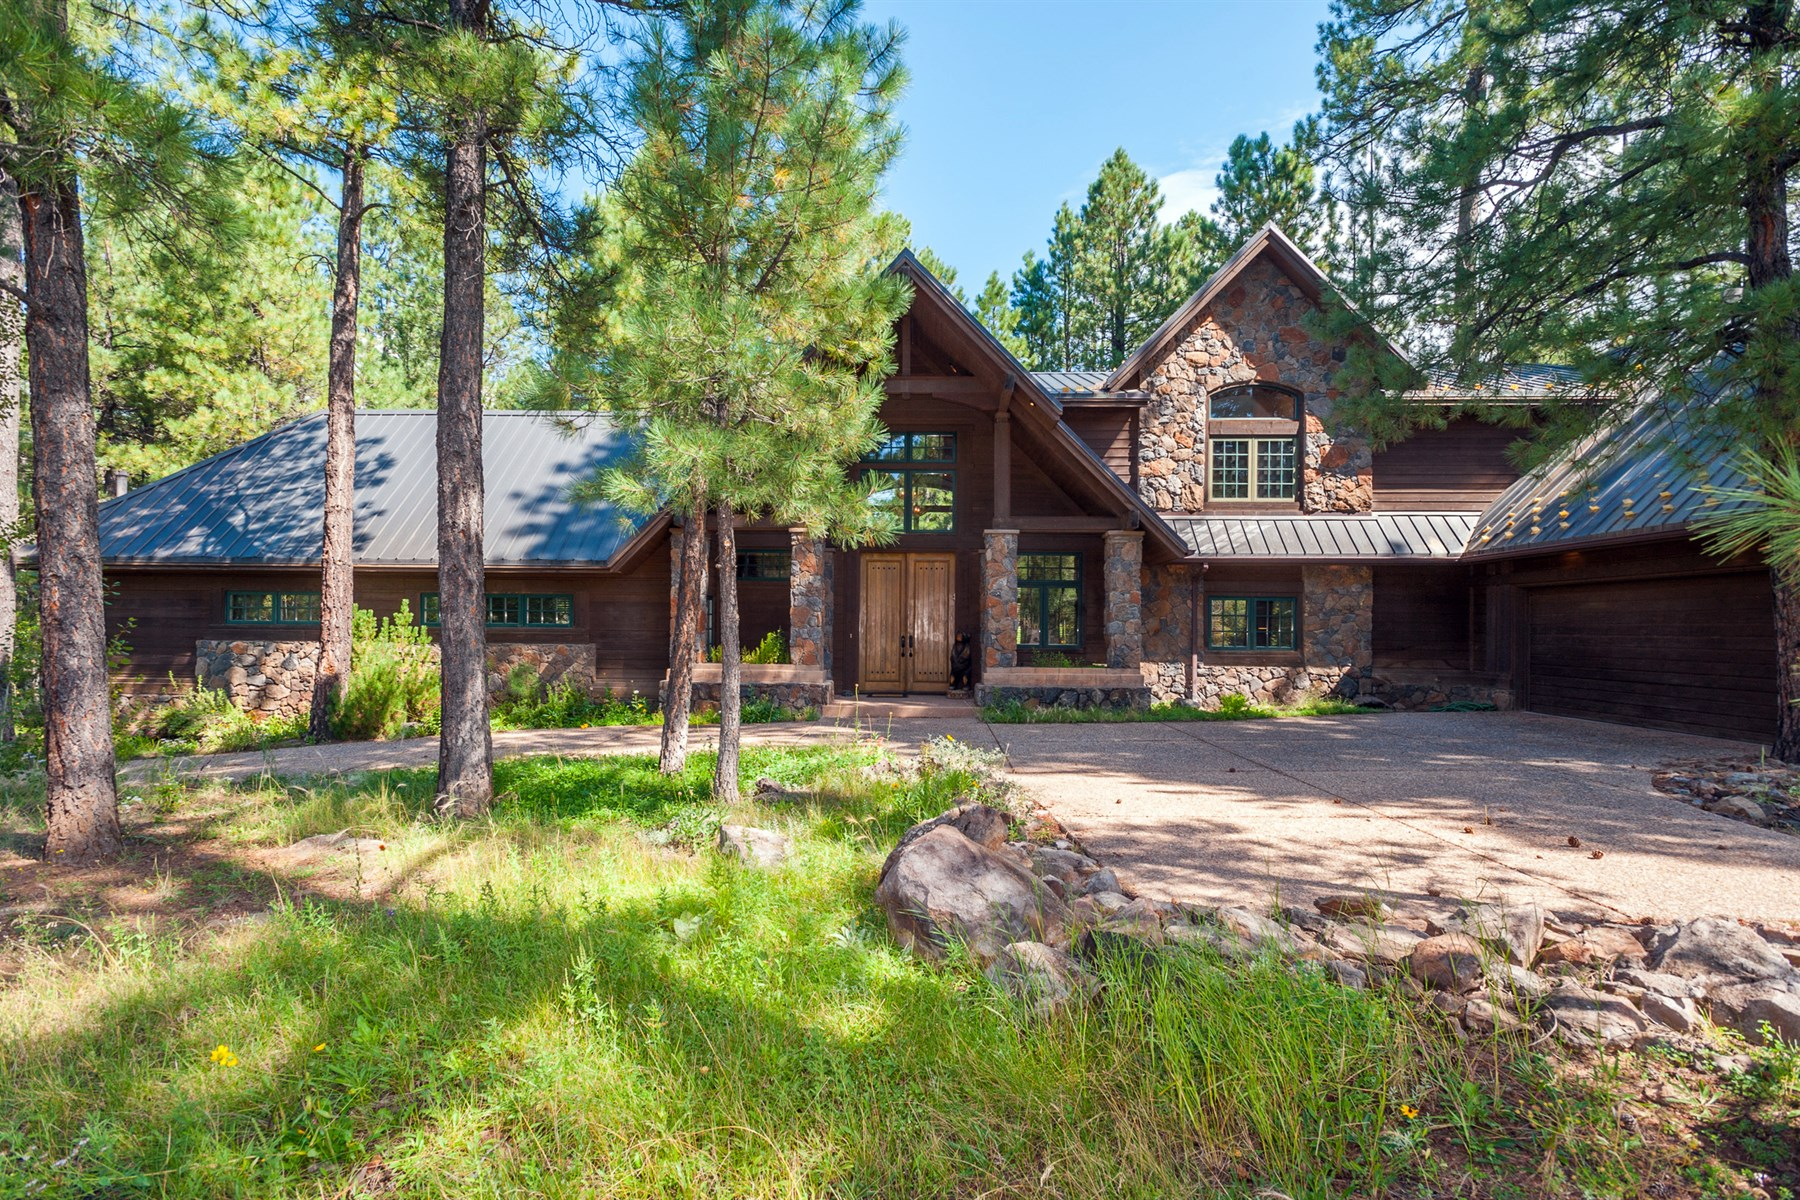 Maison unifamiliale pour l Vente à magnificent Sandelin designed retreat is perfectly situated among the tall pines 58-2764 Bear Howard Flagstaff, Arizona, 86005 États-Unis